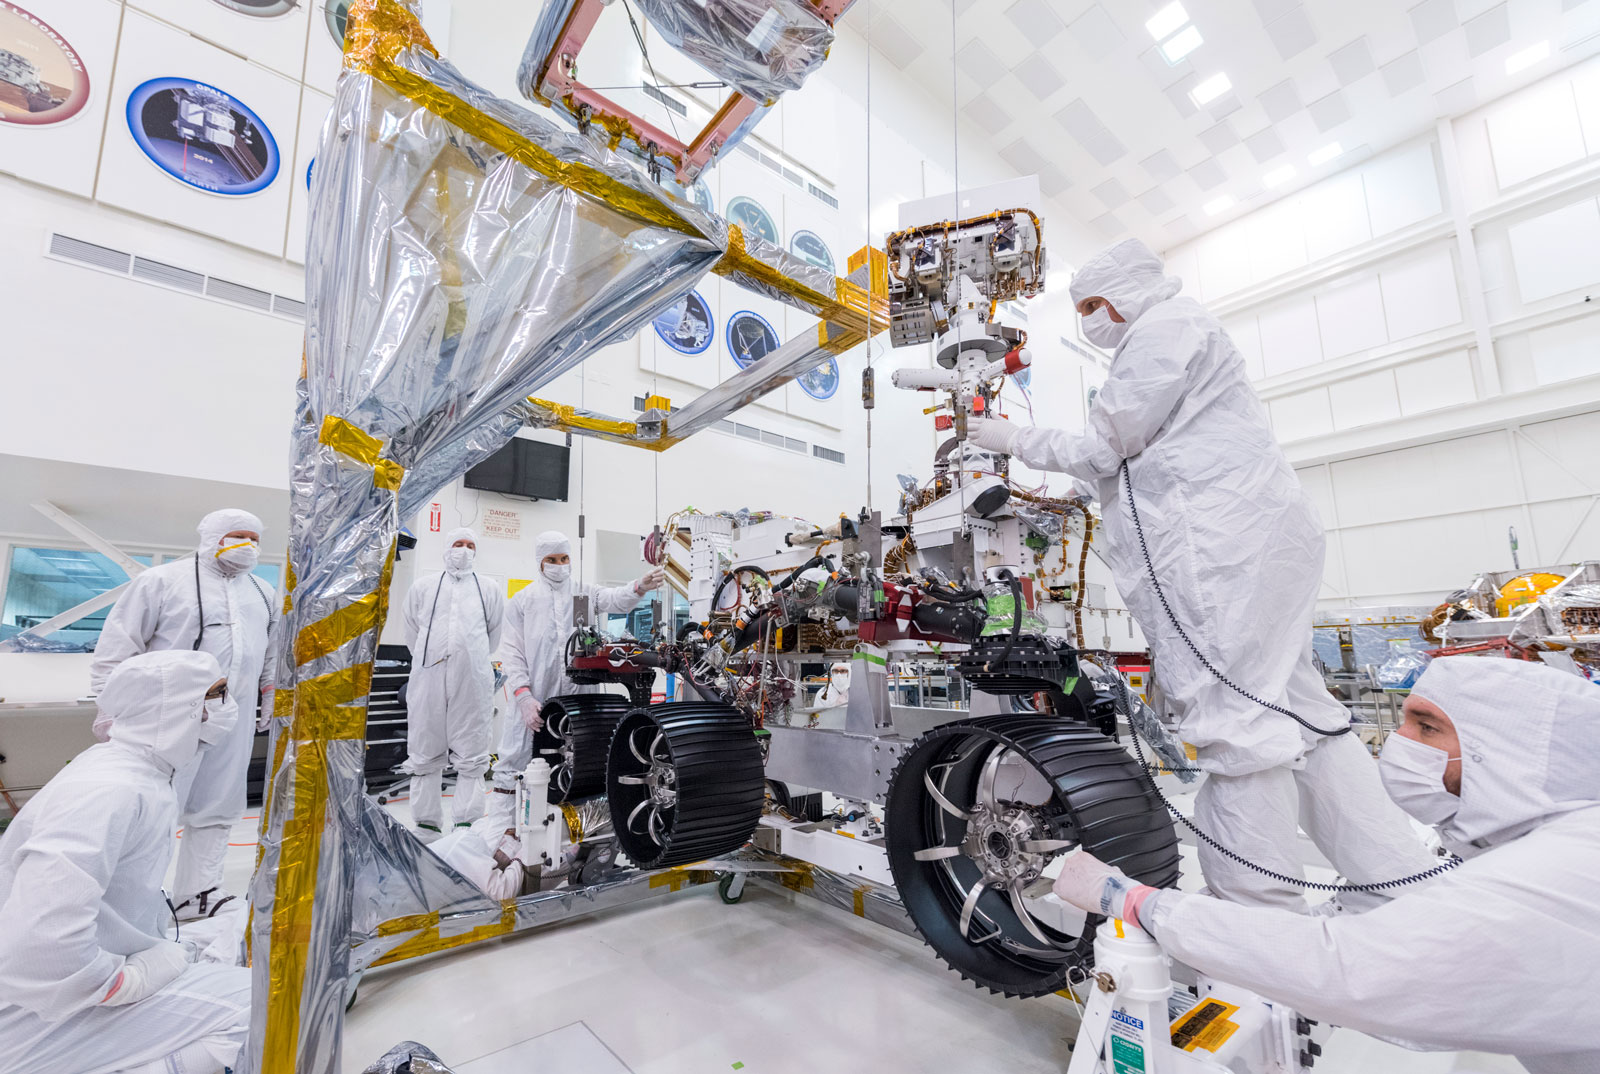 In this image, taken on June 13, 2019, engineers at JPL install the starboard legs and wheels — otherwise known as the mobility suspension — on the Mars 2020 rover.